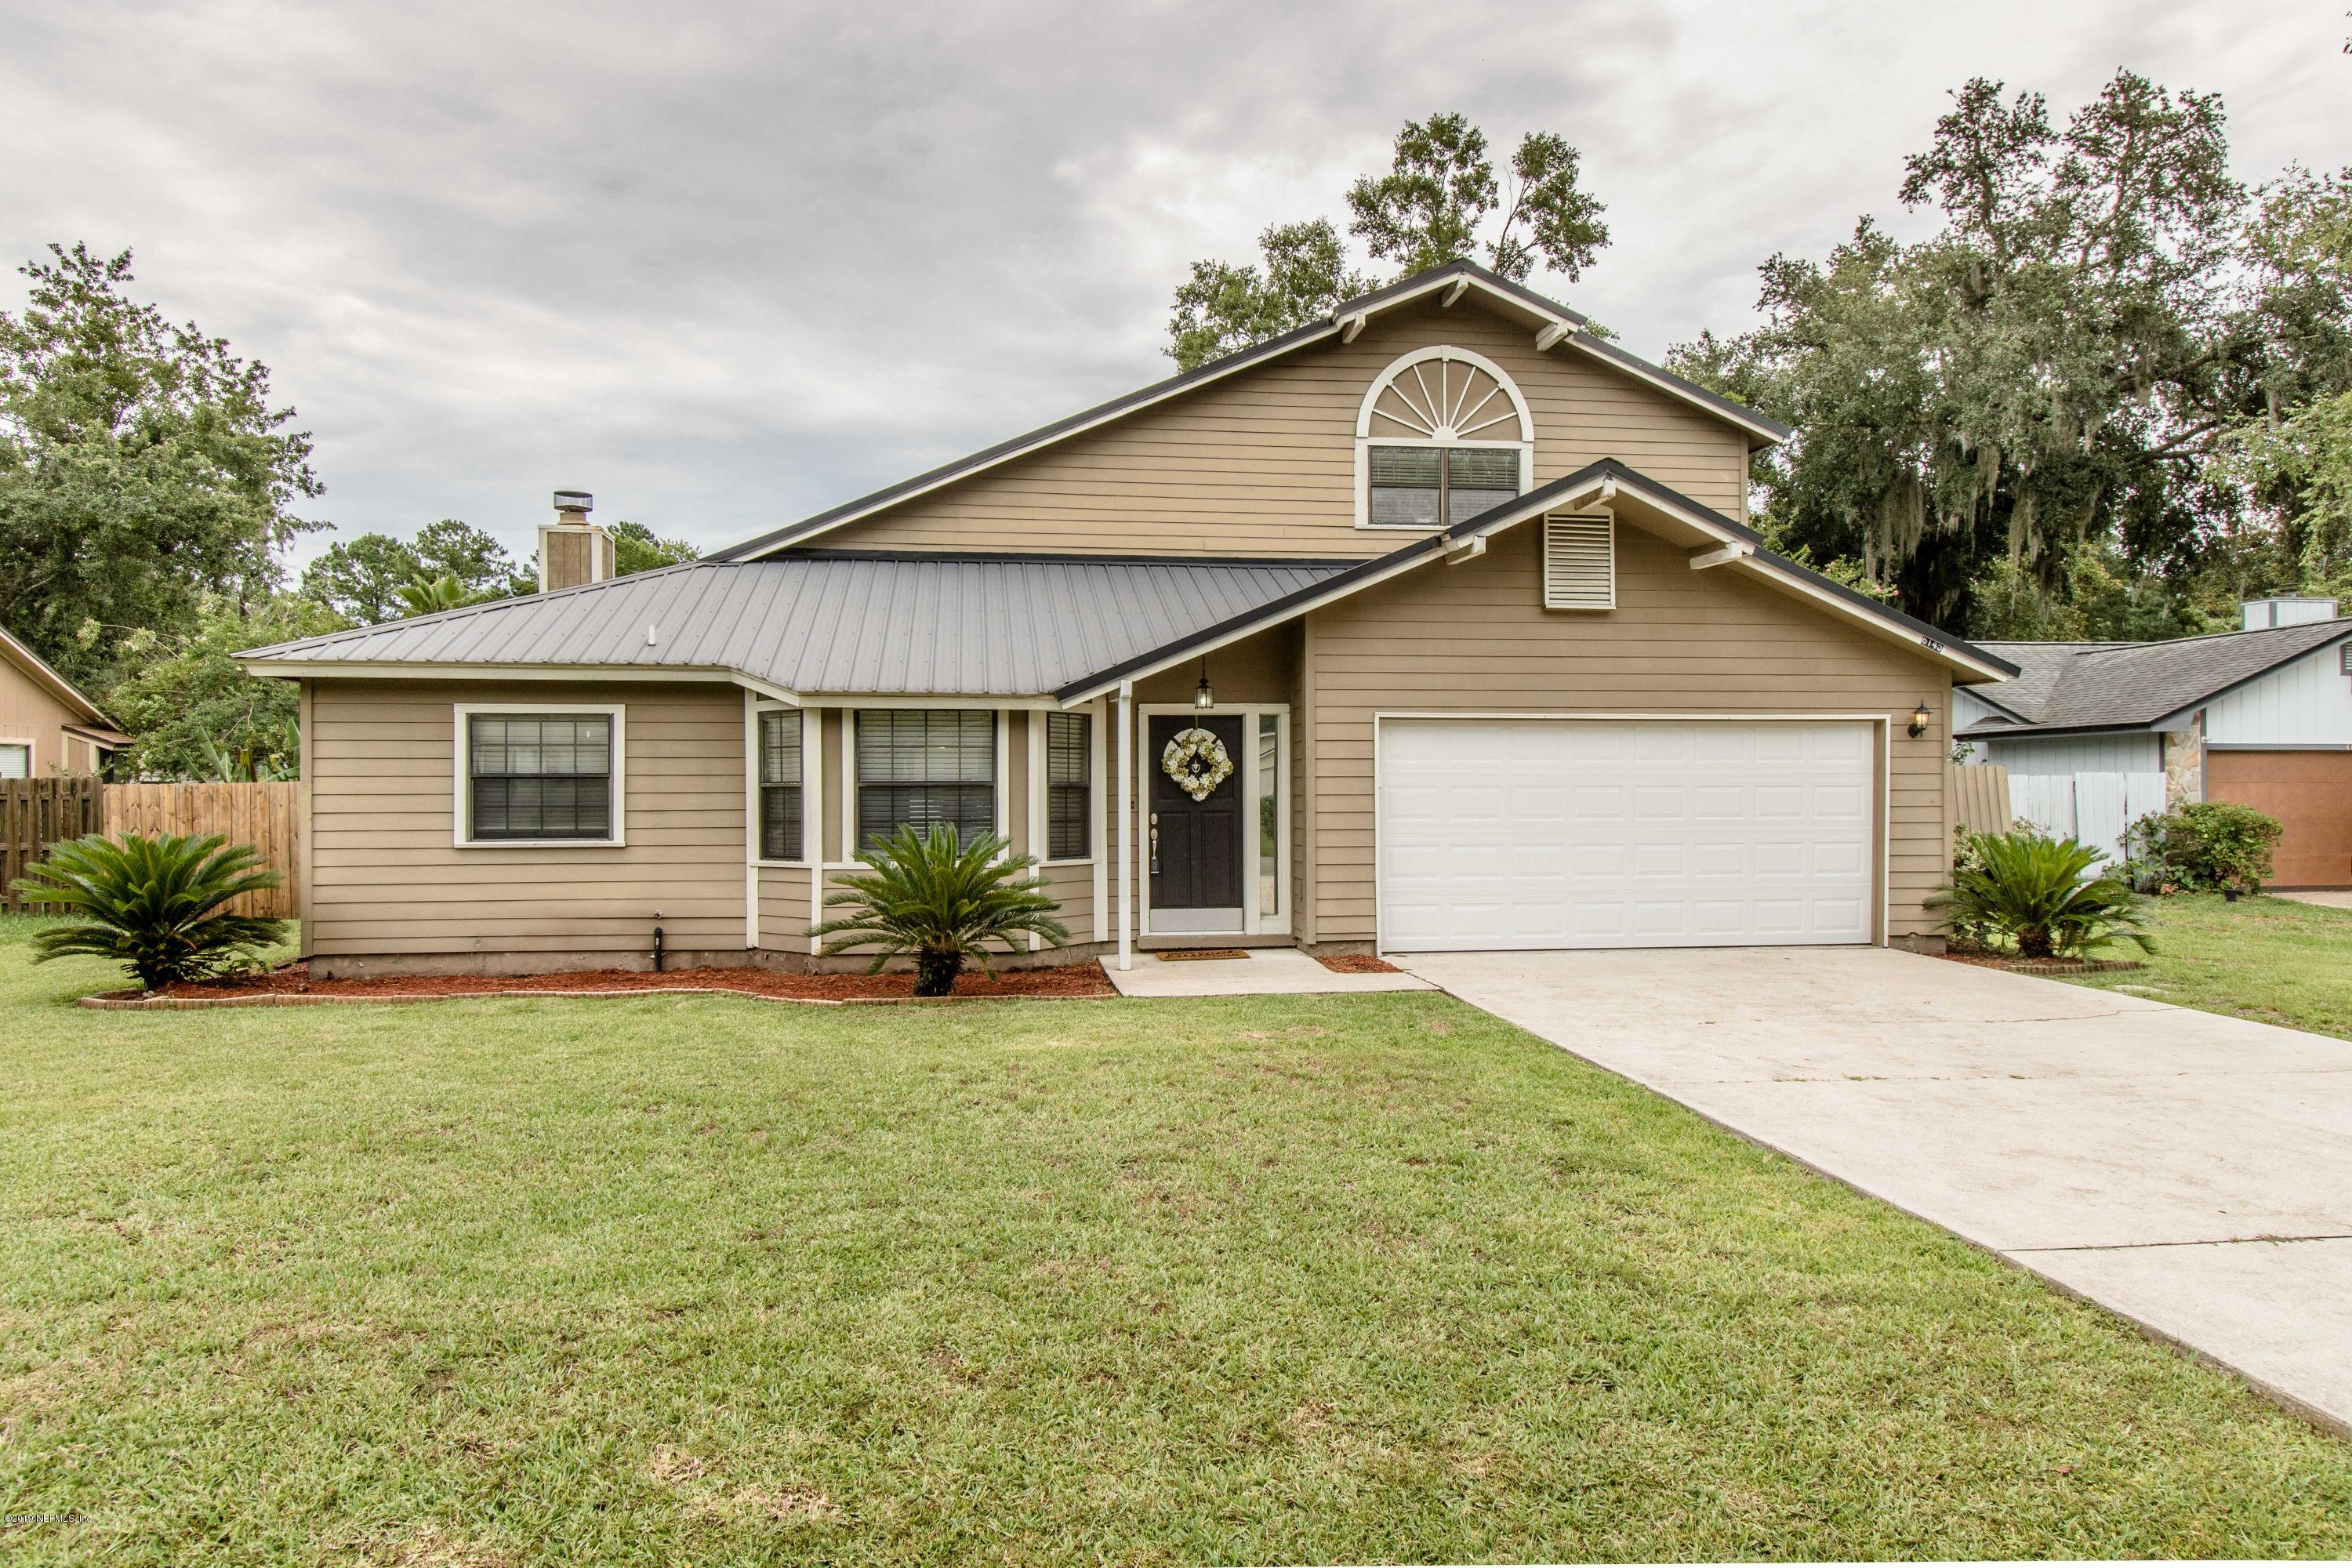 6145 ISLAND FOREST, FLEMING ISLAND, FLORIDA 32003, 3 Bedrooms Bedrooms, ,2 BathroomsBathrooms,Residential - single family,For sale,ISLAND FOREST,1000916